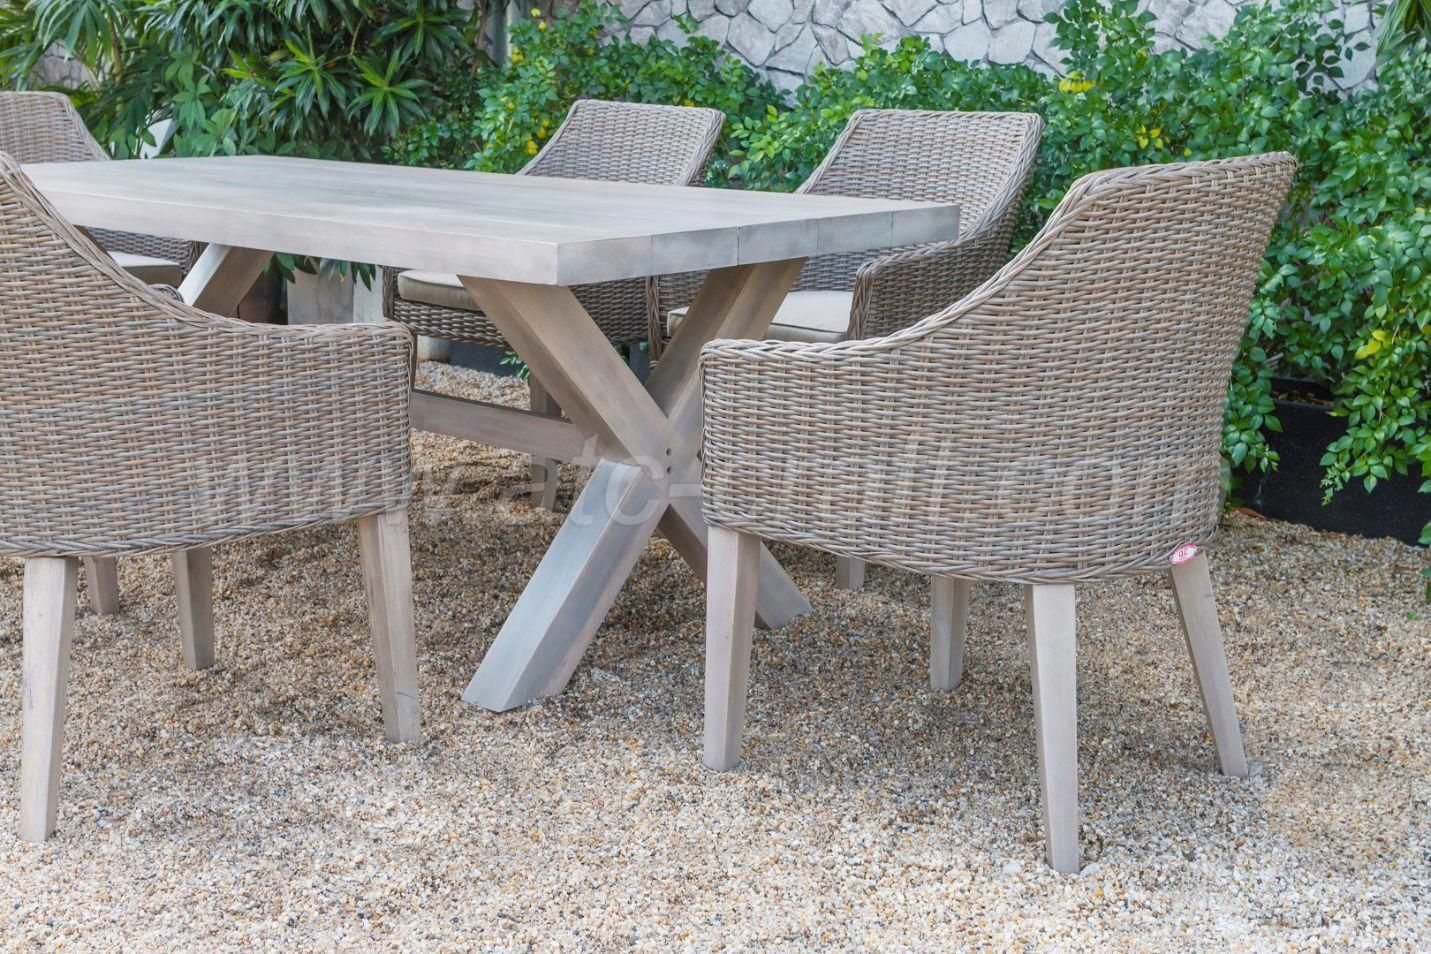 Atc outdoor furniture factory is famous for providing high quality and trendy outdoor products homeowners are in love with the designs the structure as